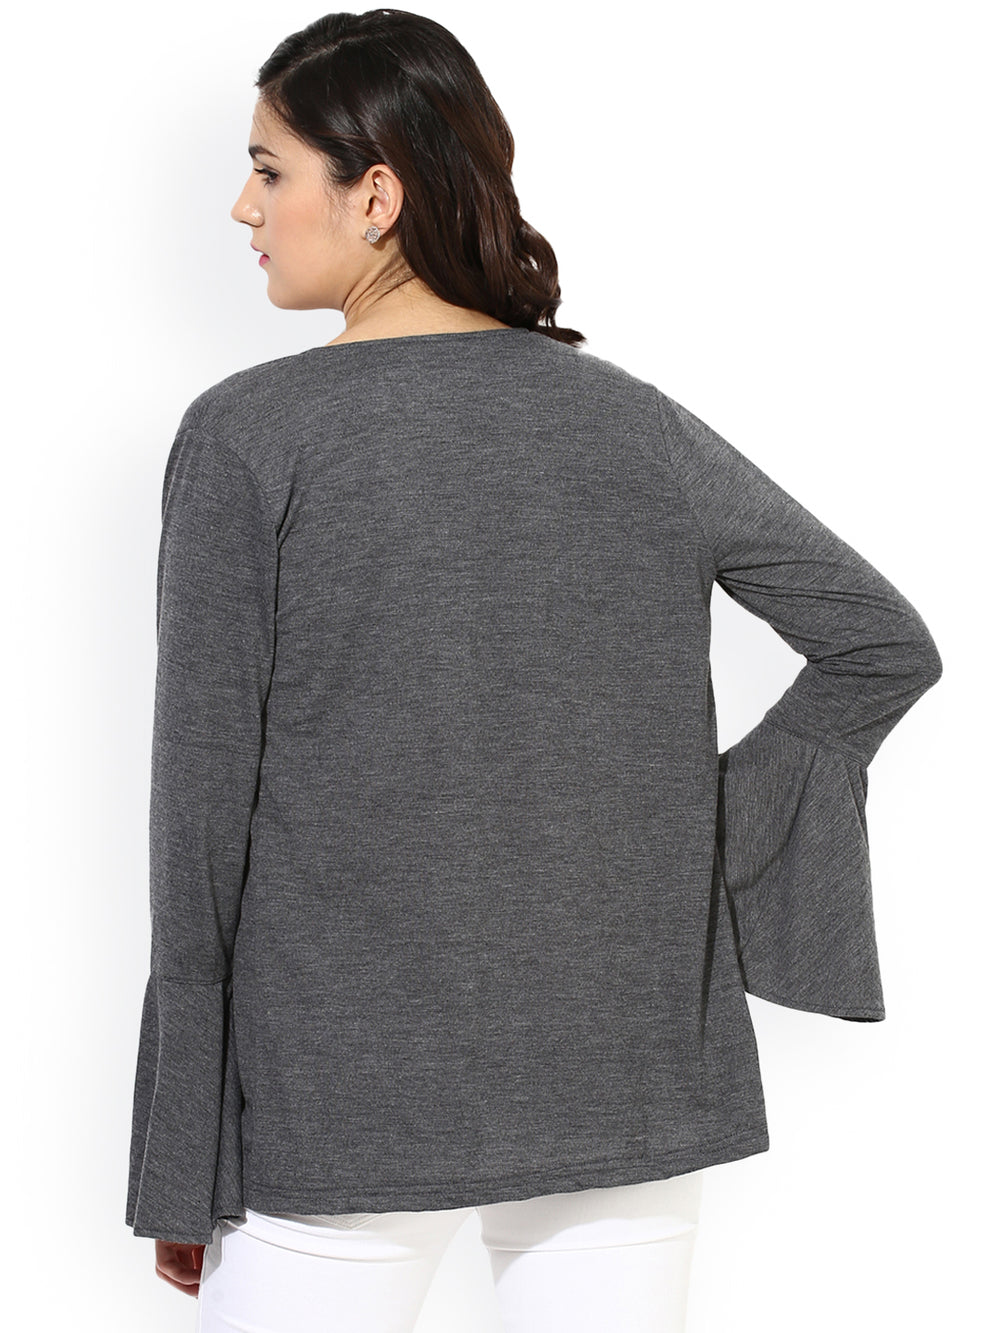 Besiva Charcoal Grey Shrug